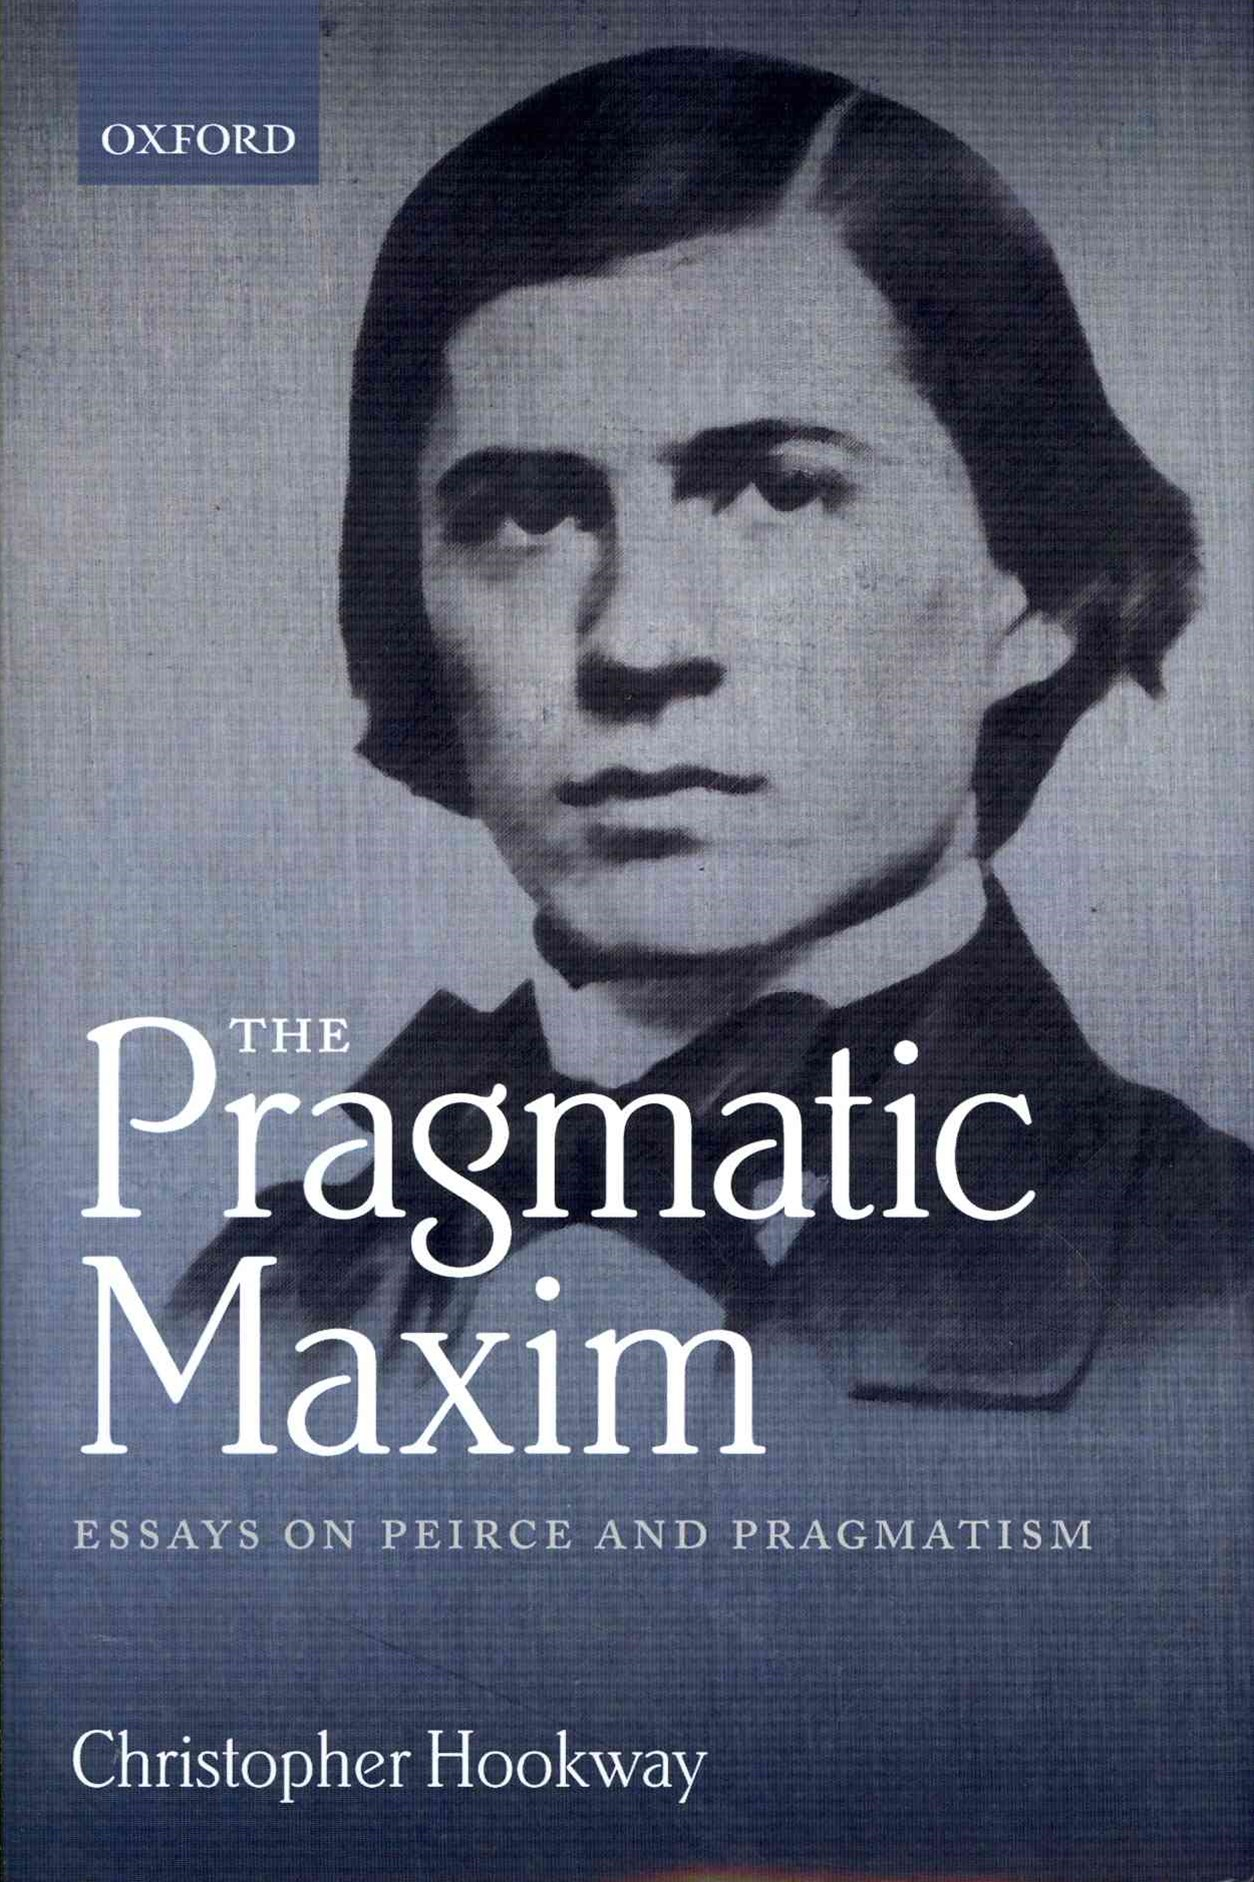 The Pragmatic Maxim